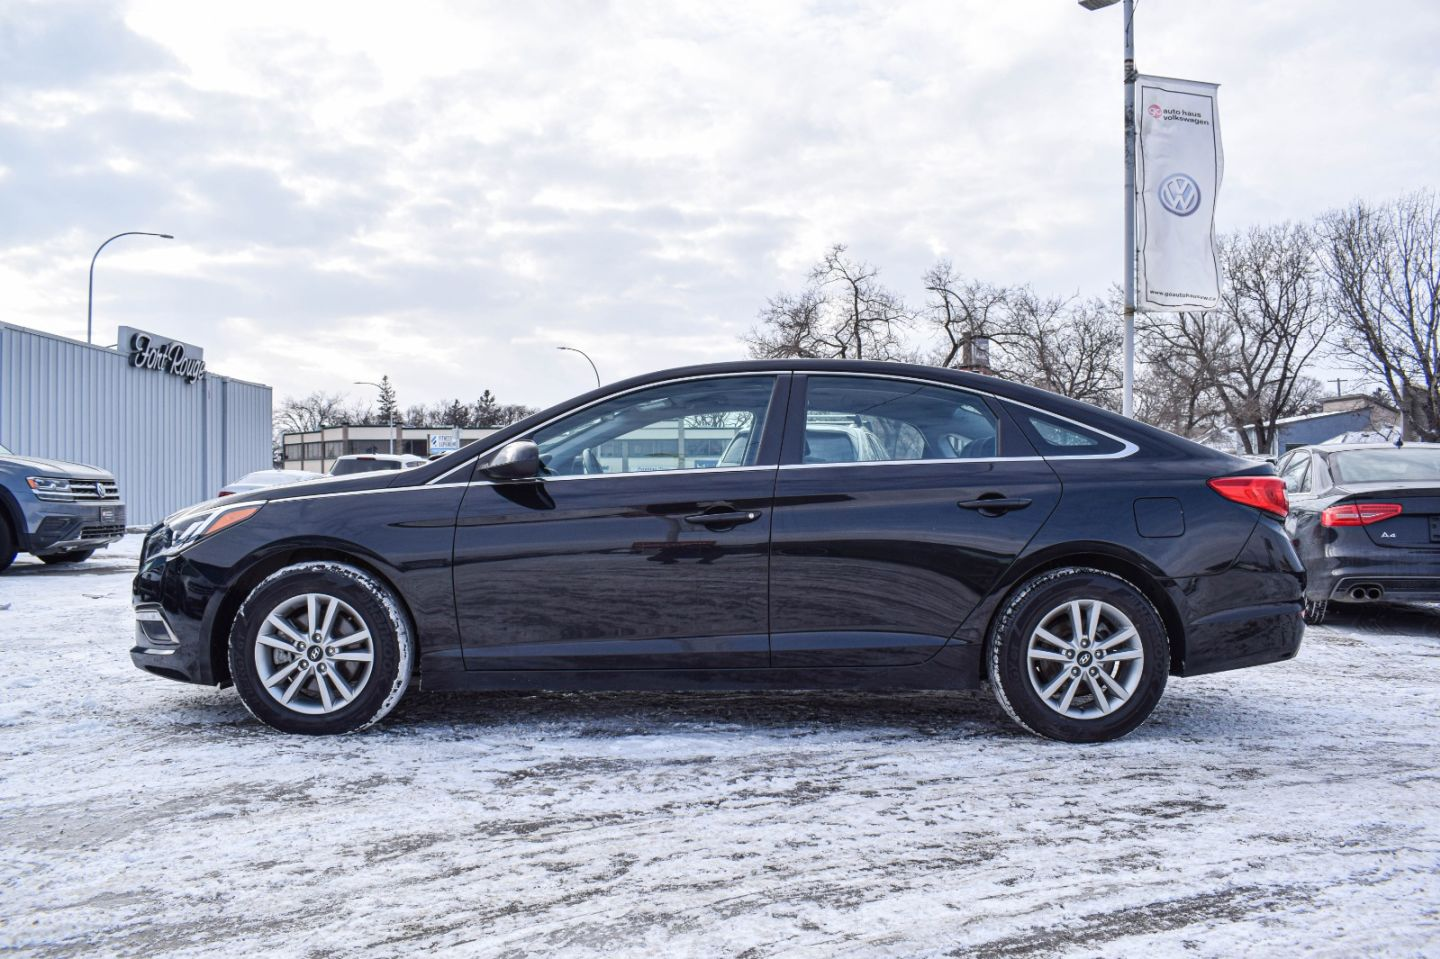 2016 Hyundai Sonata 2.4L GL for sale in Winnipeg, Manitoba